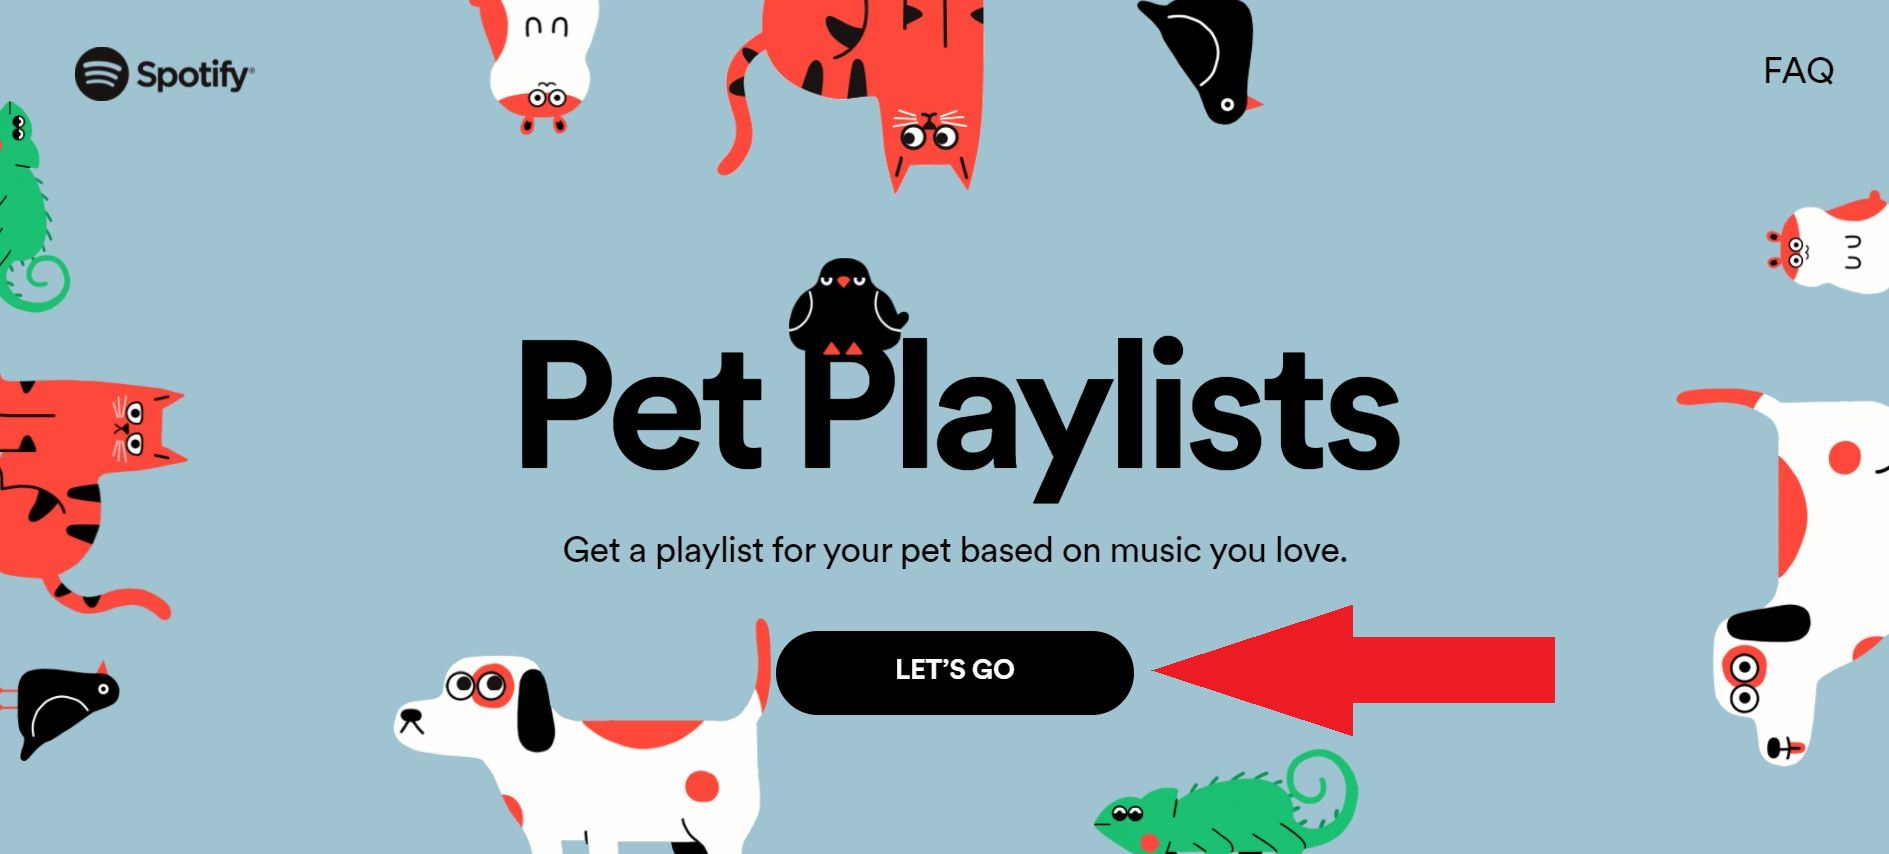 How to Make a Spotify Pet Playlist